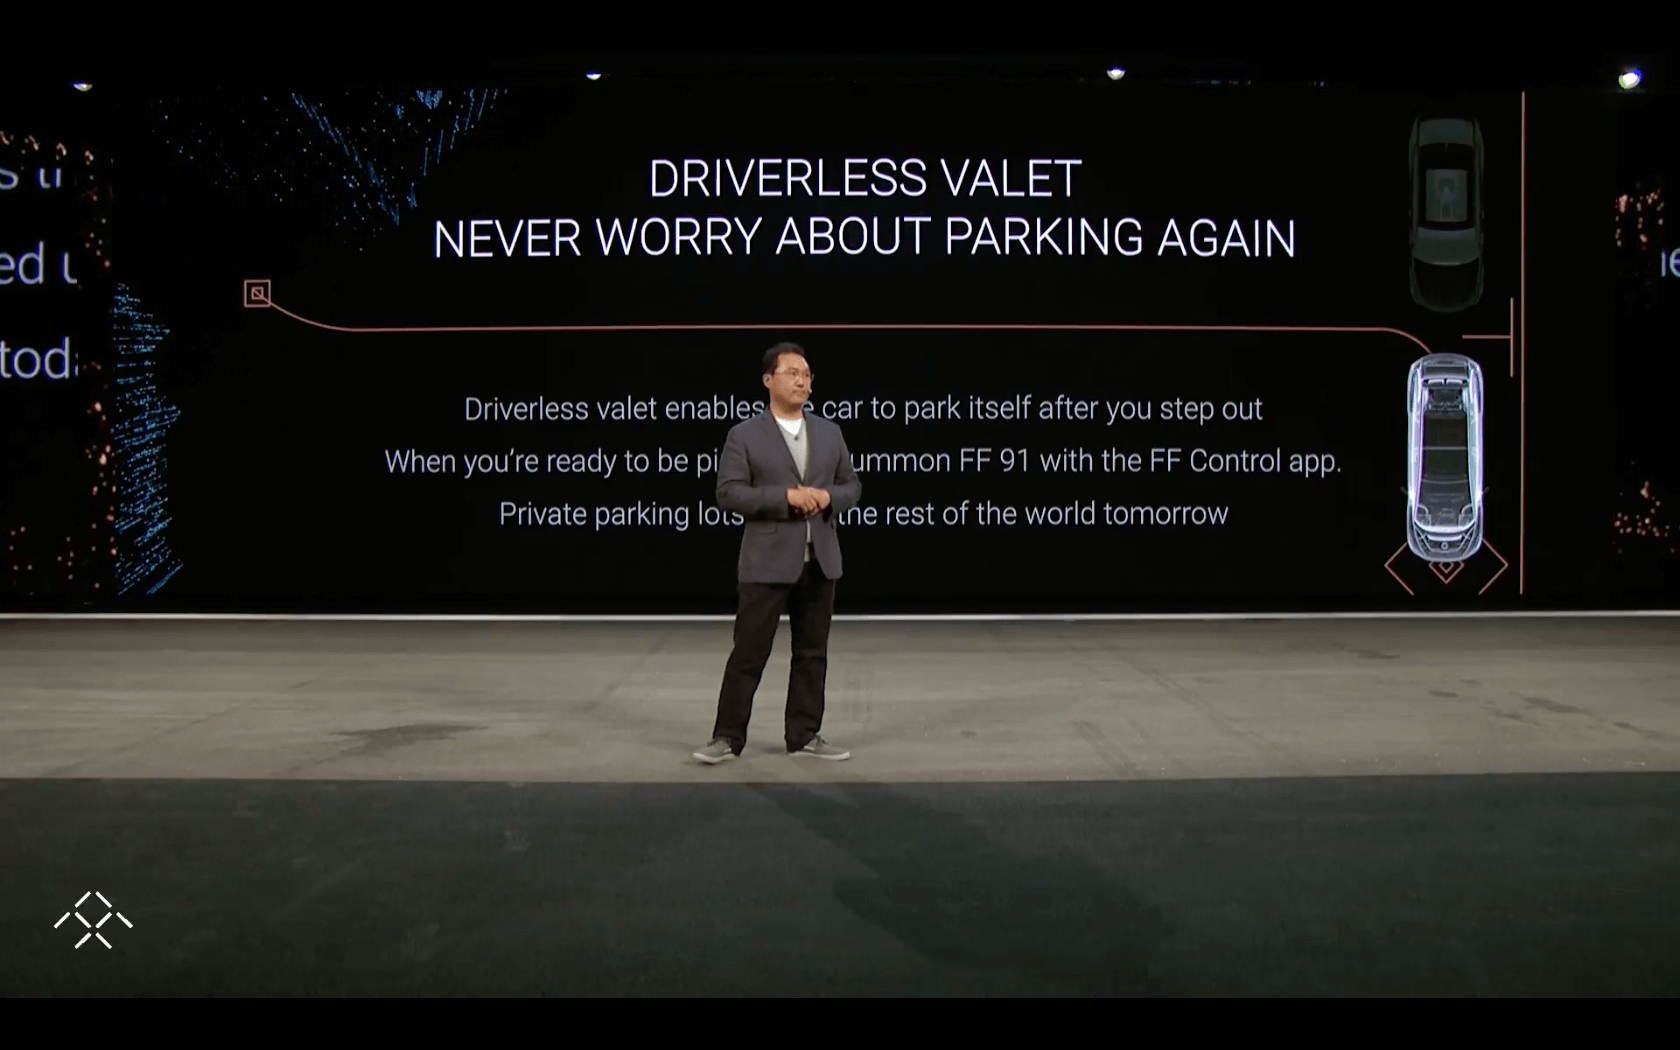 The Faraday Future keynote at the 2017 CES conference in Las Vegas.